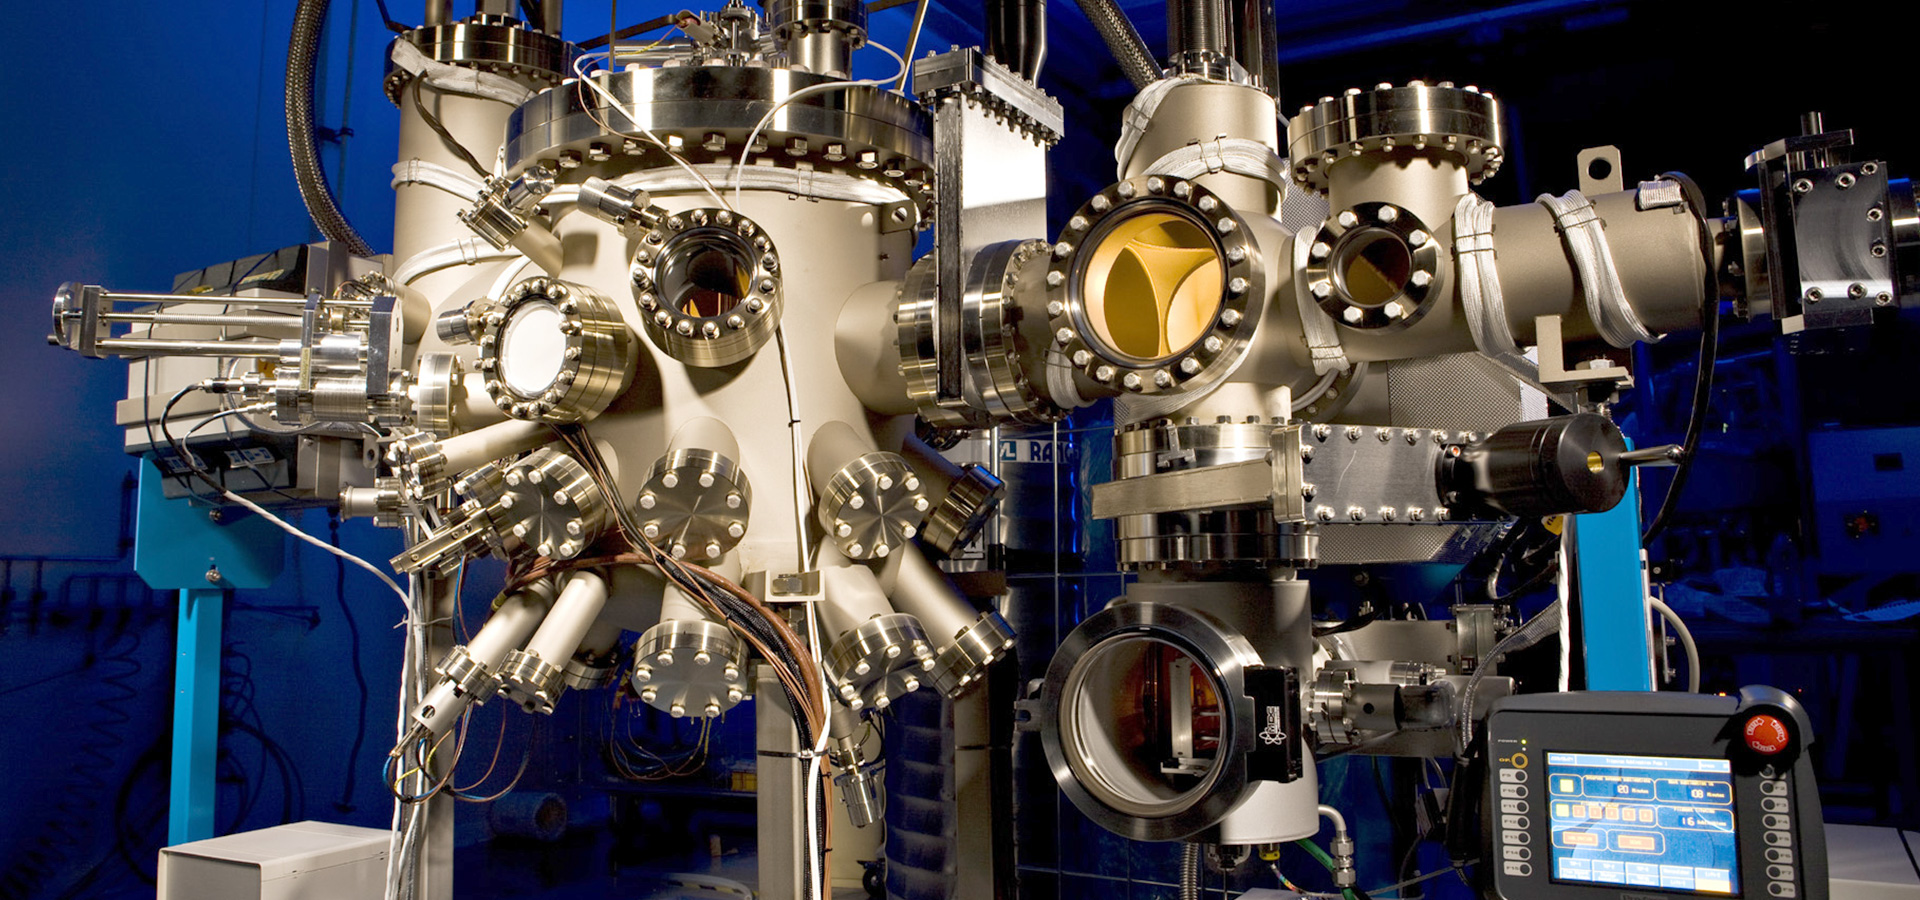 RIBER - Molecular Beam Epitaxy (MBE) products and services